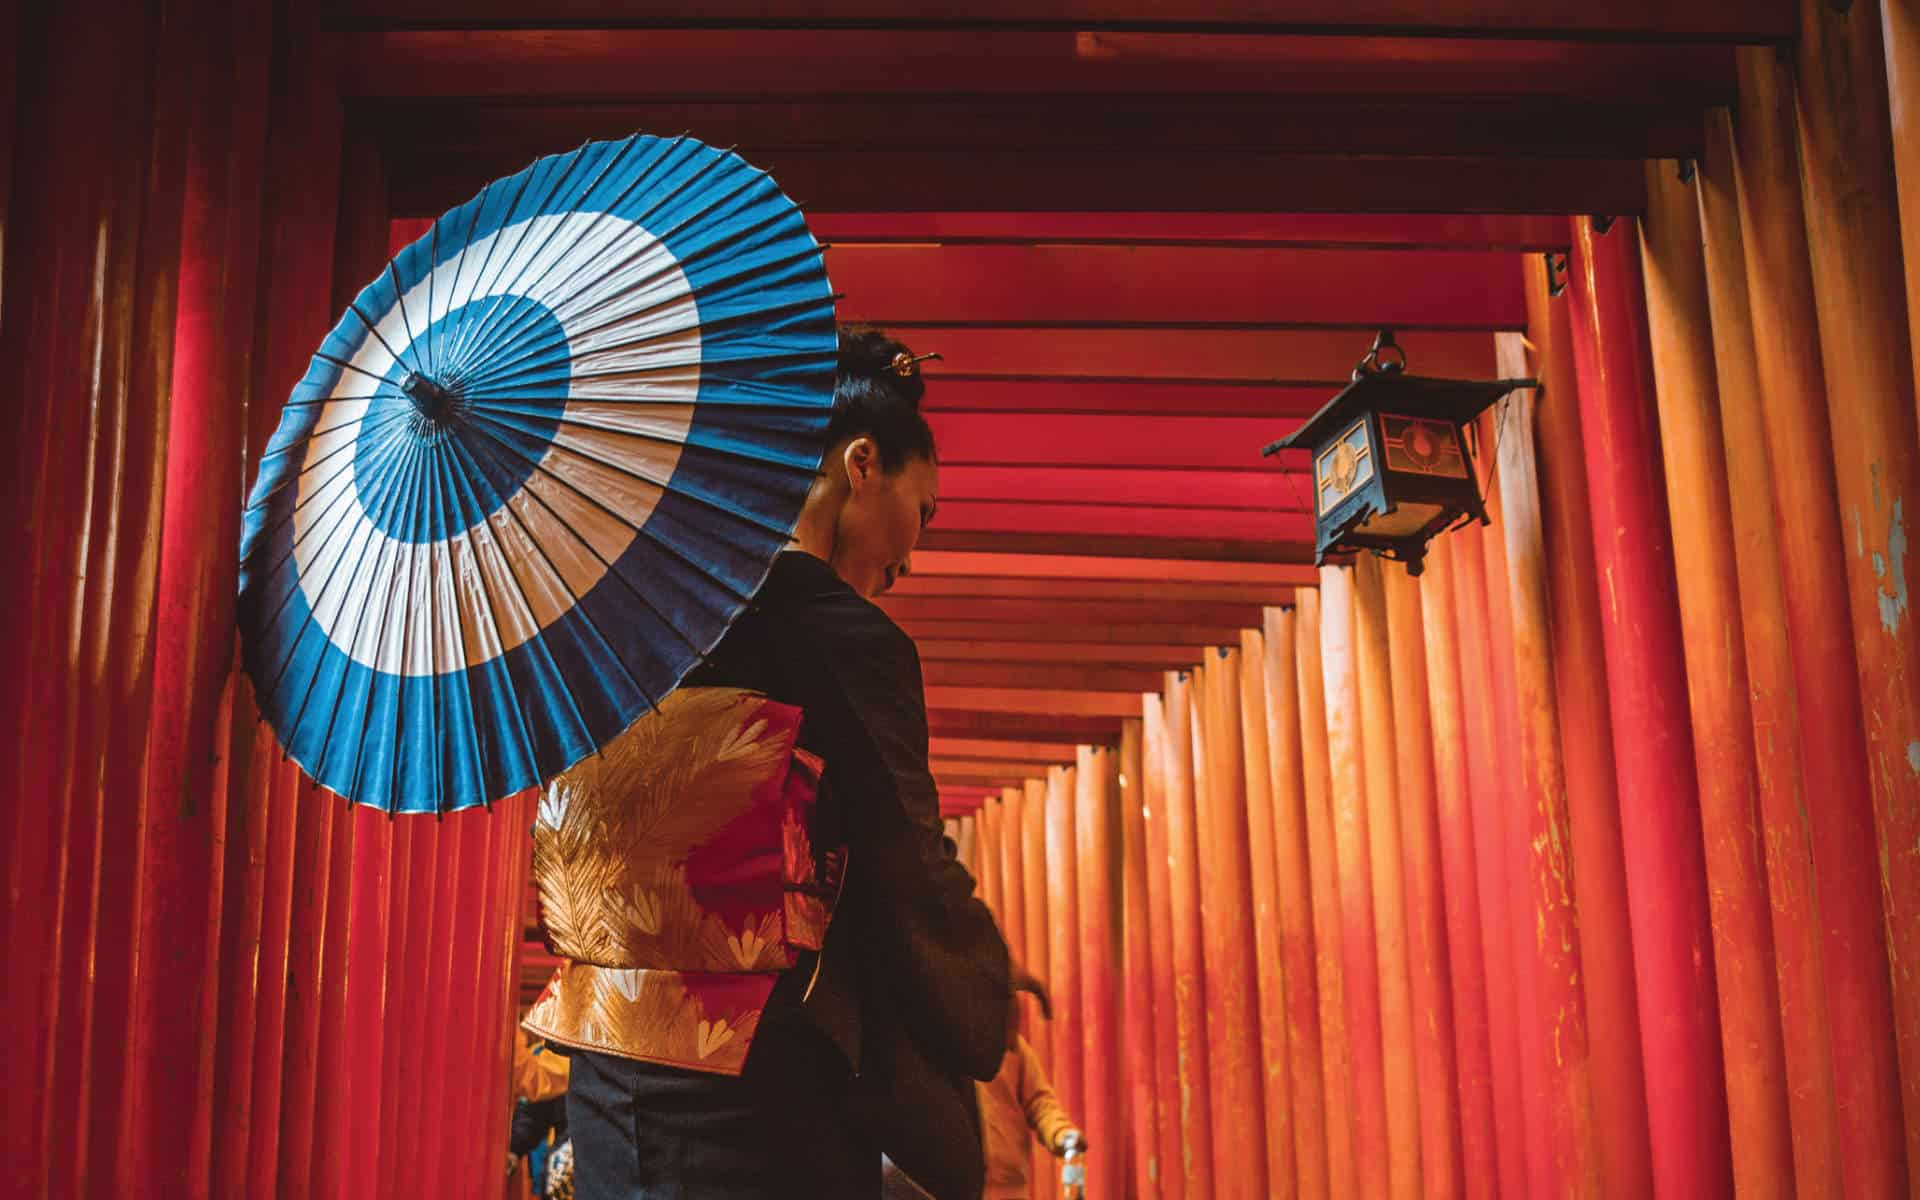 Discover ancient traditions on a new Regent Japan voyage.